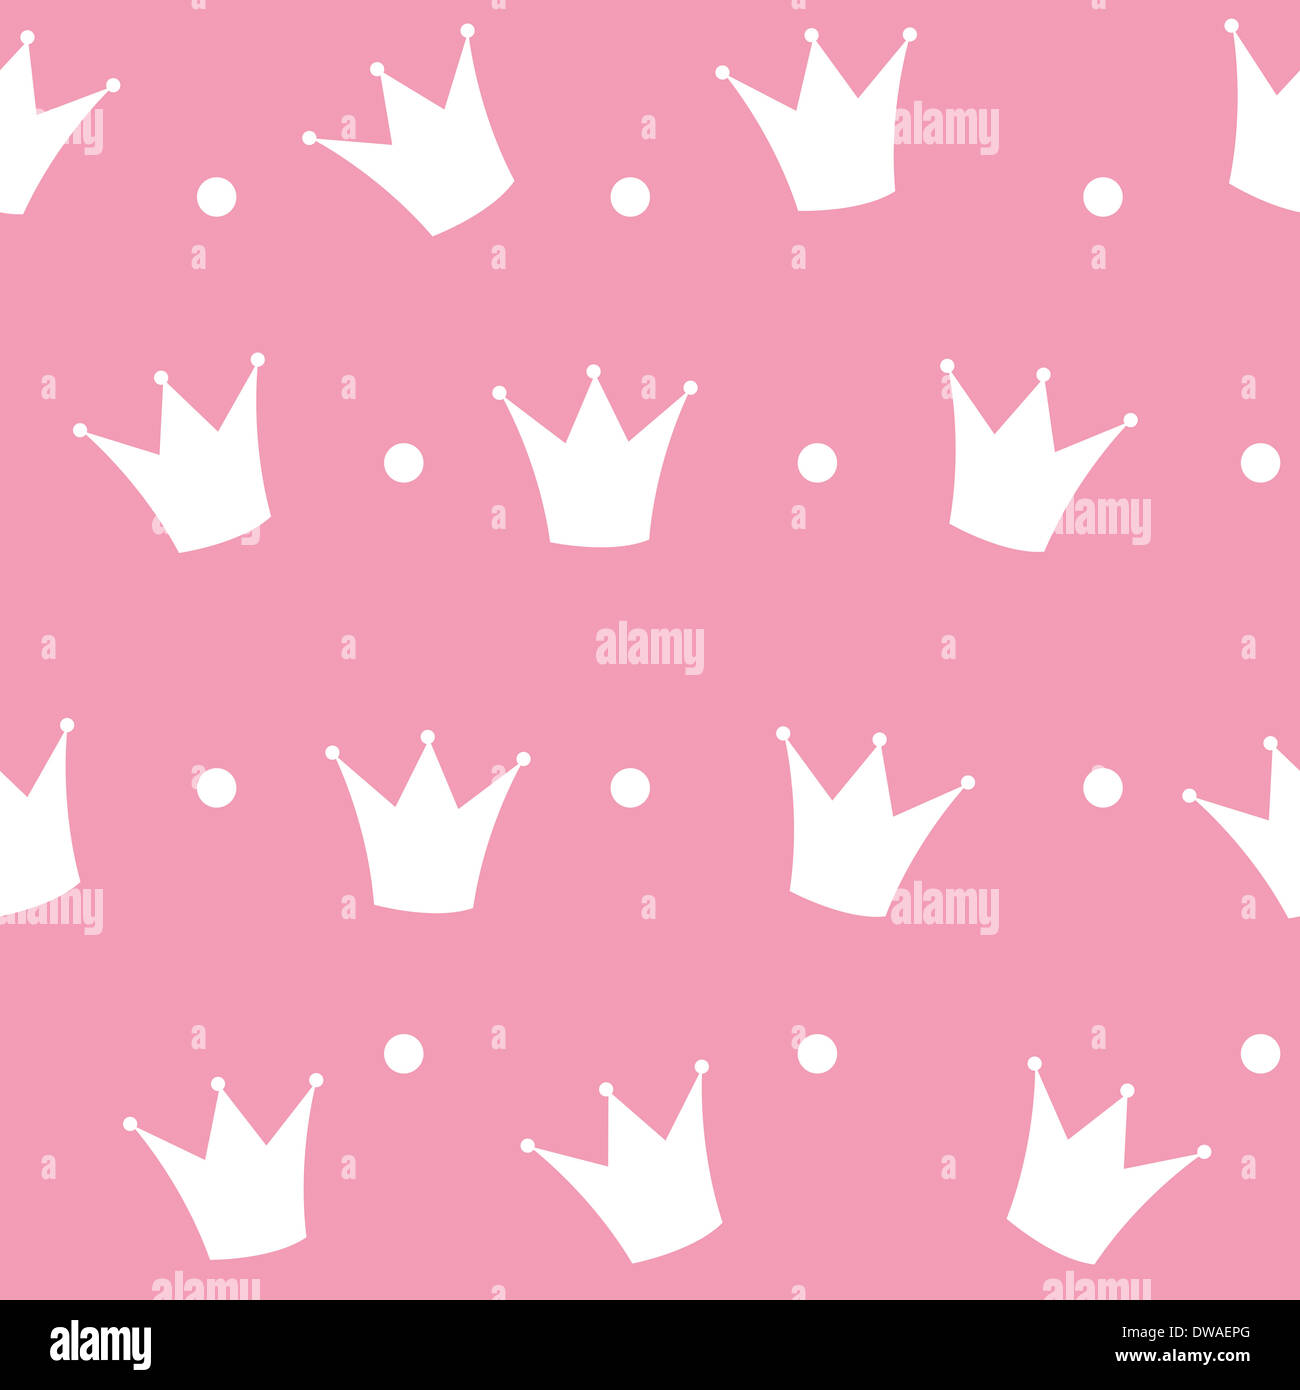 Princess Crown Seamless Pattern Background Vector Illustration Stock